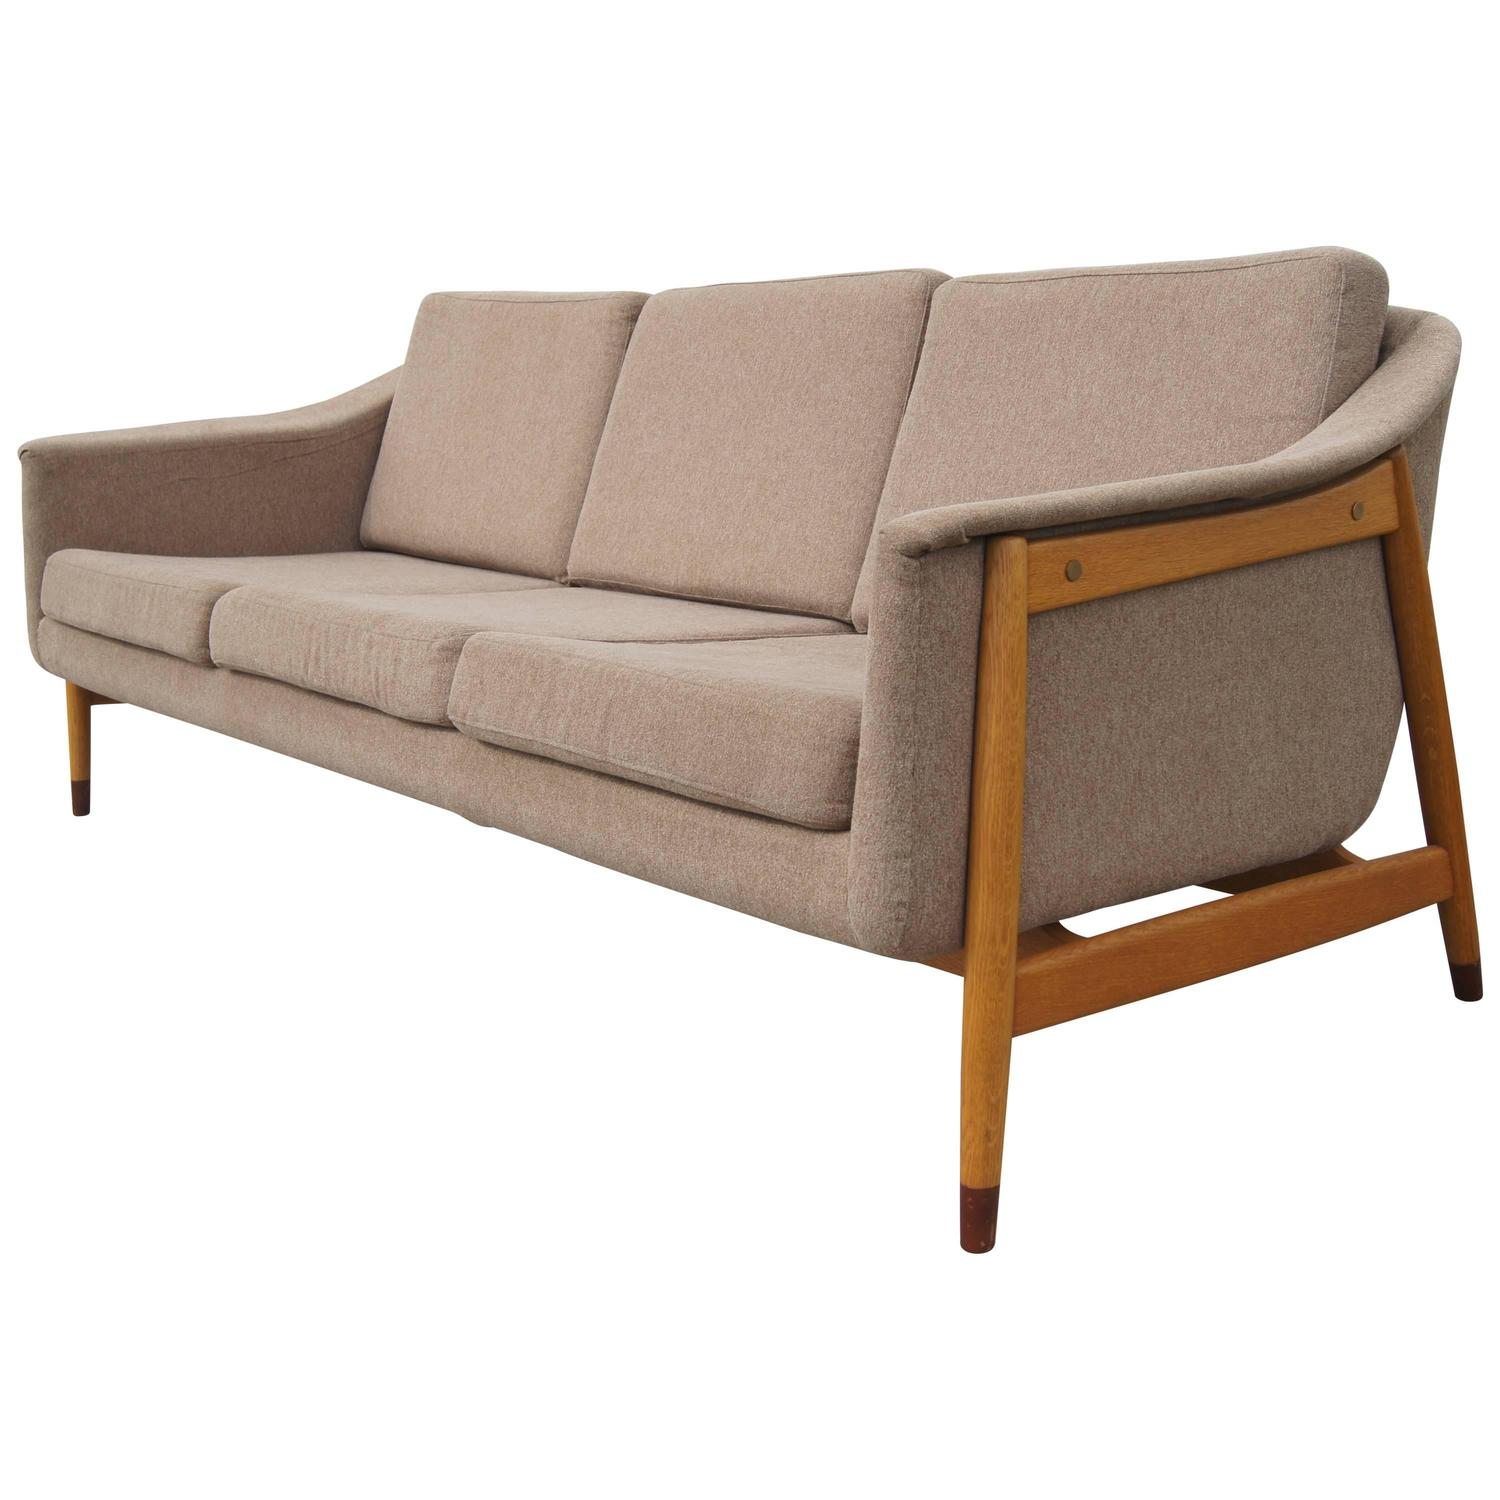 Three seat swedish sofa by folke ohlsson for dux at 1stdibs for Swedish sofa